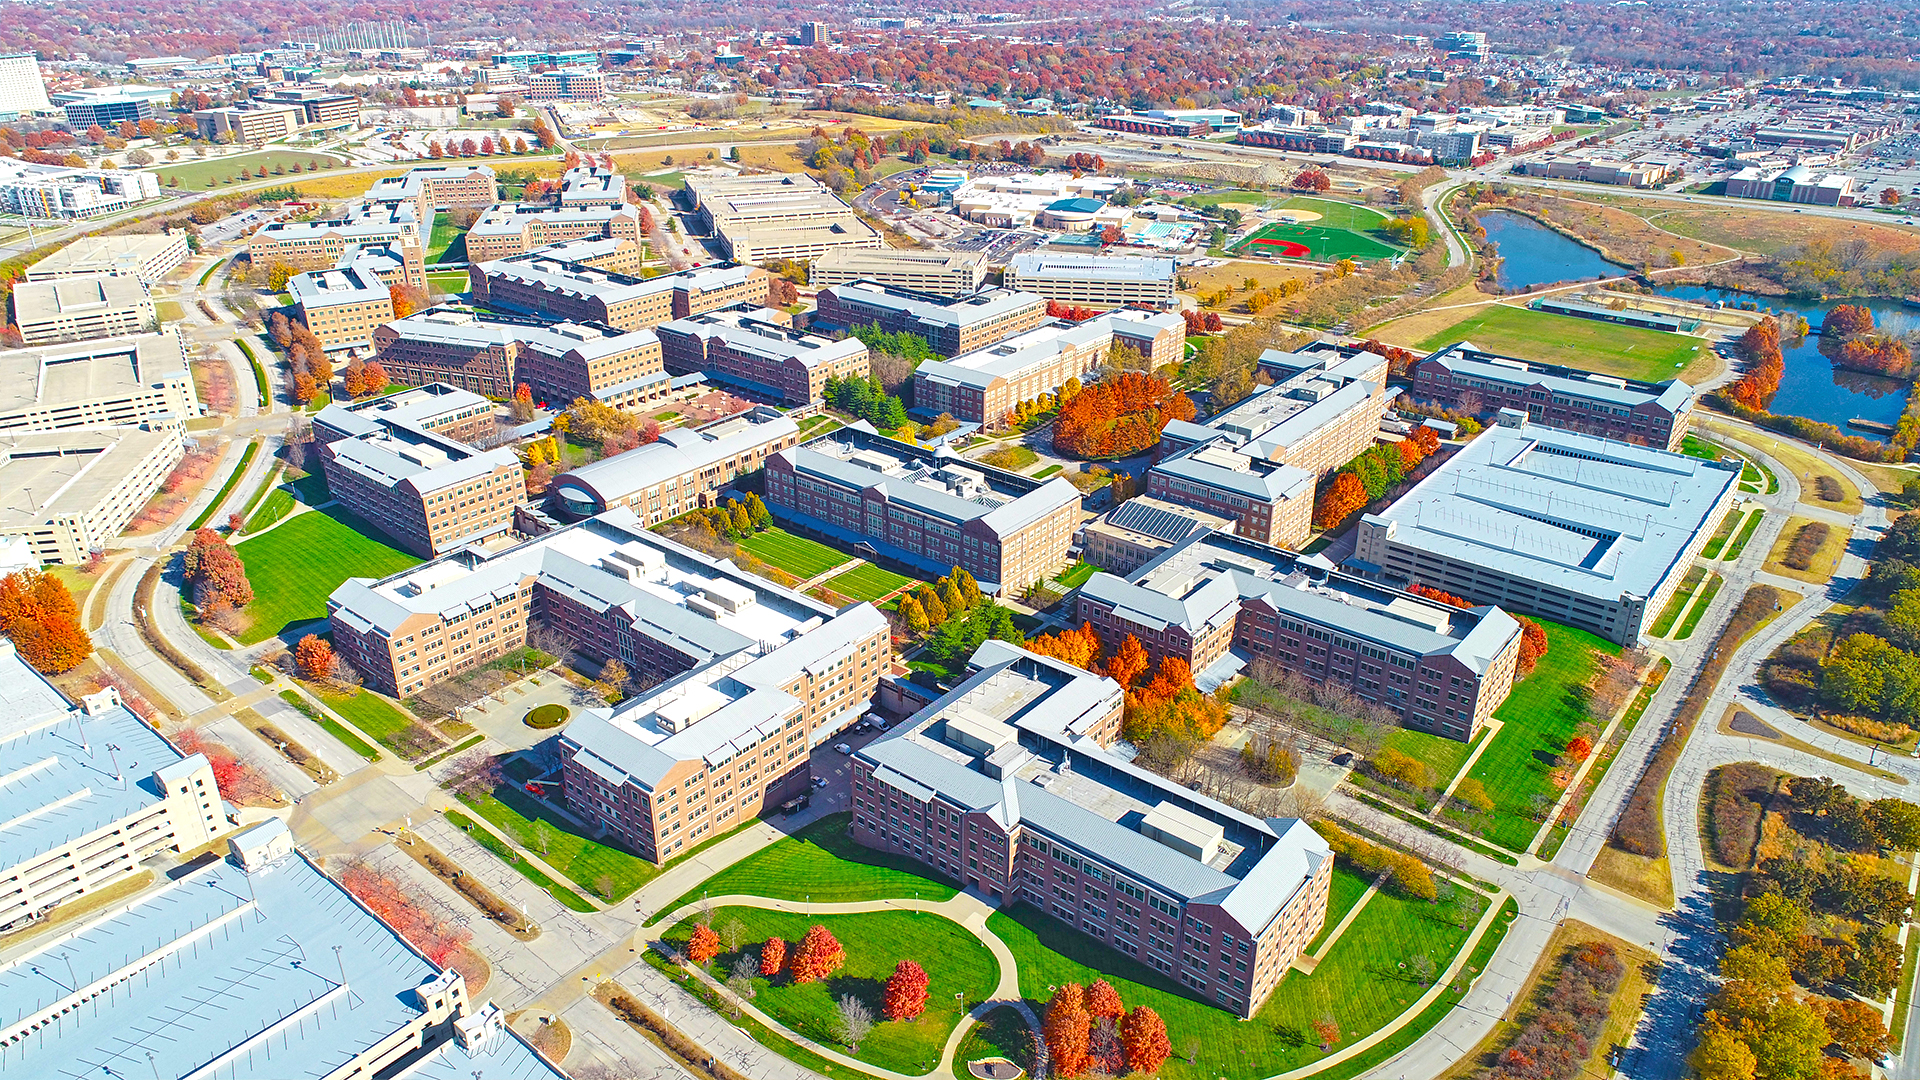 An aerial shot of the Aspiria campus highlighting some of the parking garages.